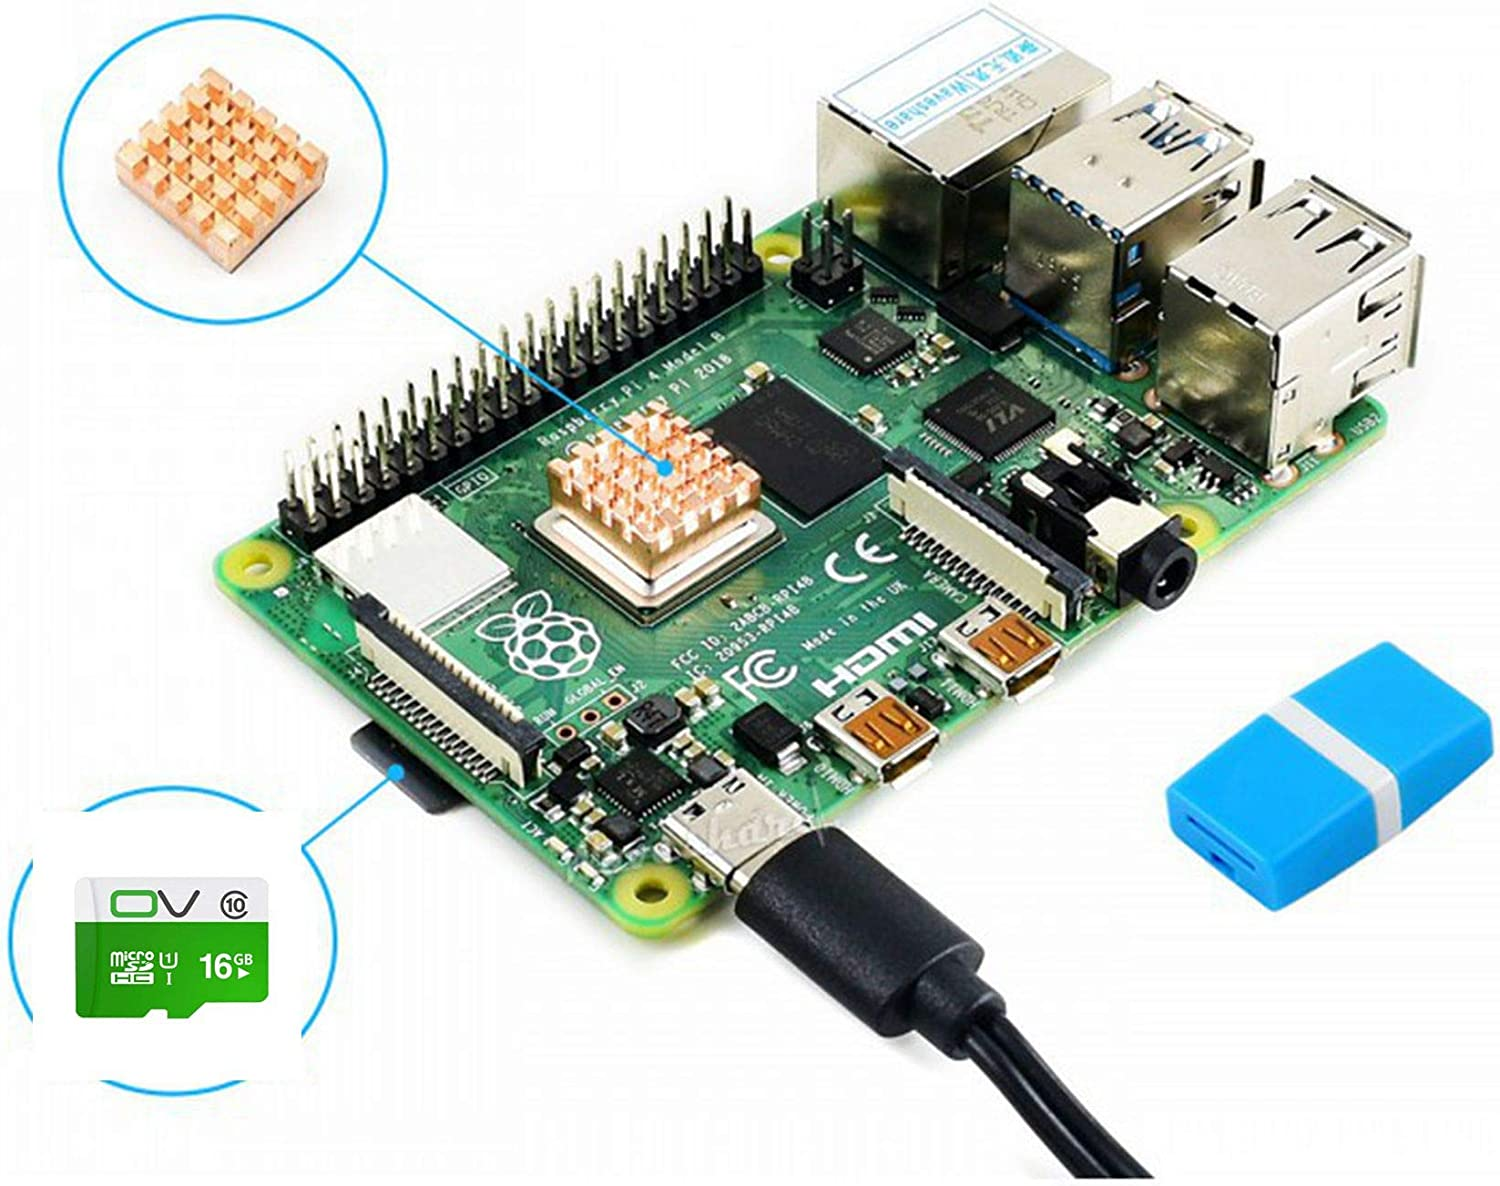 pzsmocn Raspberry Pi 4 Model B Kit Includes PI4B-4GB 16GB Micro SD Card Heat Sink and Power Supply.The Very Essential Parts to Get Started Guaranteed Compatibility and Stability.